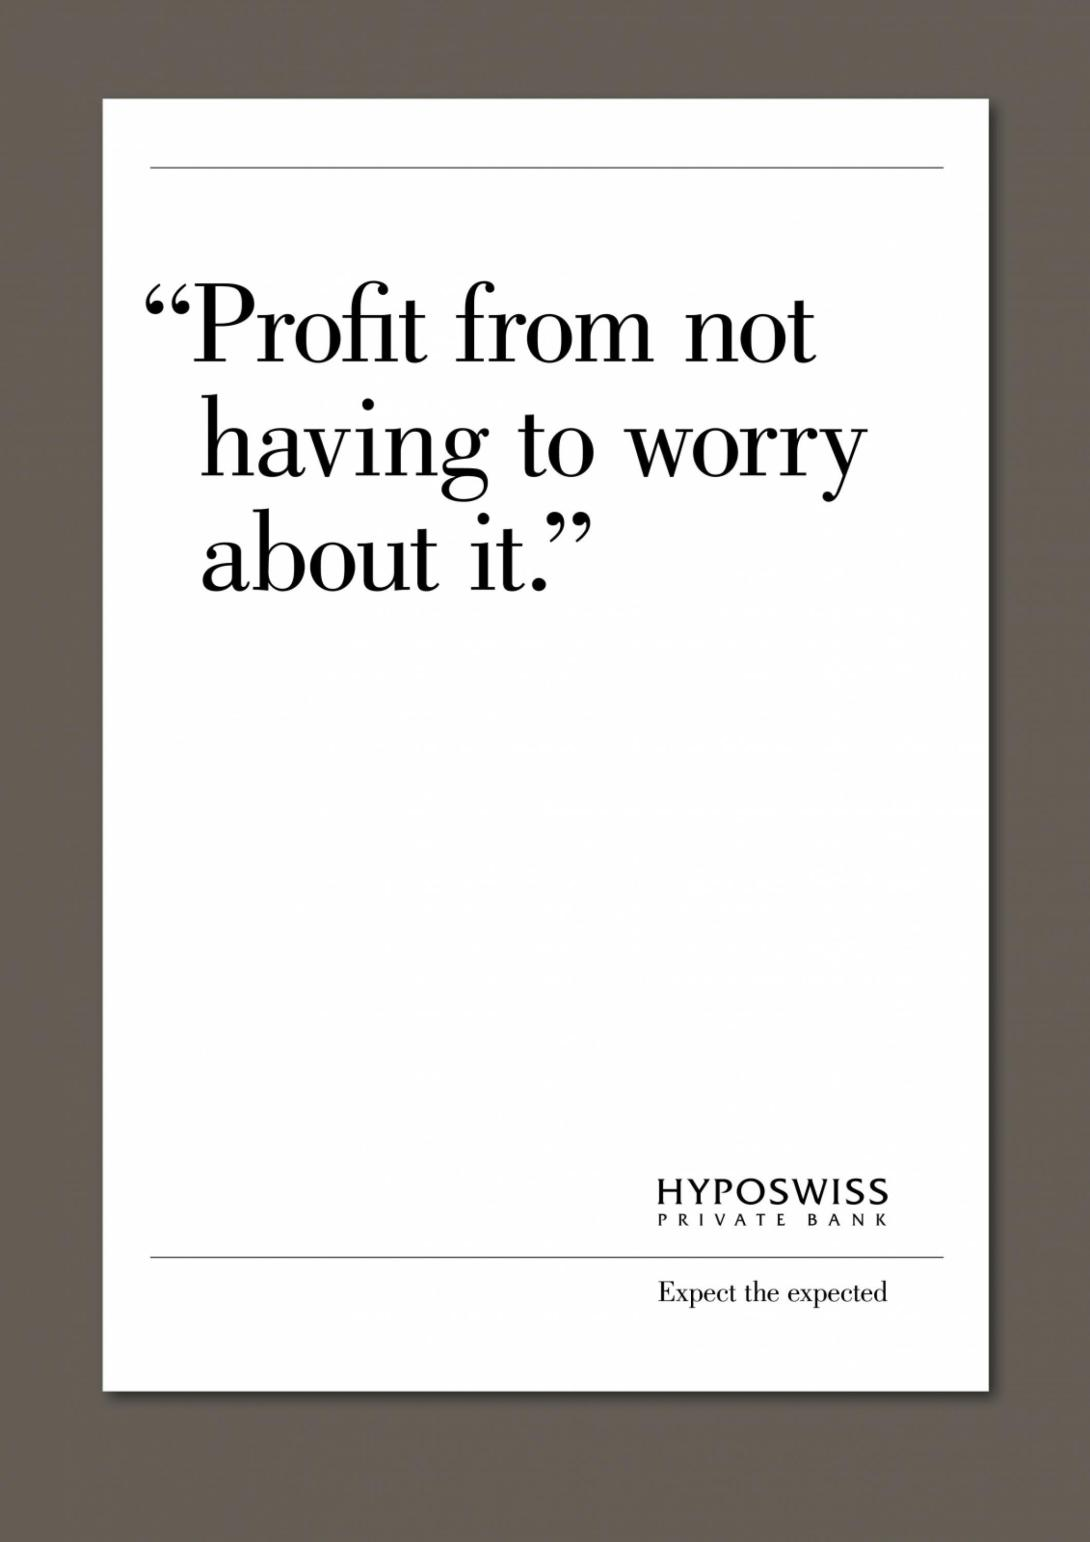 hyposwiss-private-bank-you-and-us-promises-luck-risk-fast-money-profit-less-is-not-more-print-223406-adeevee